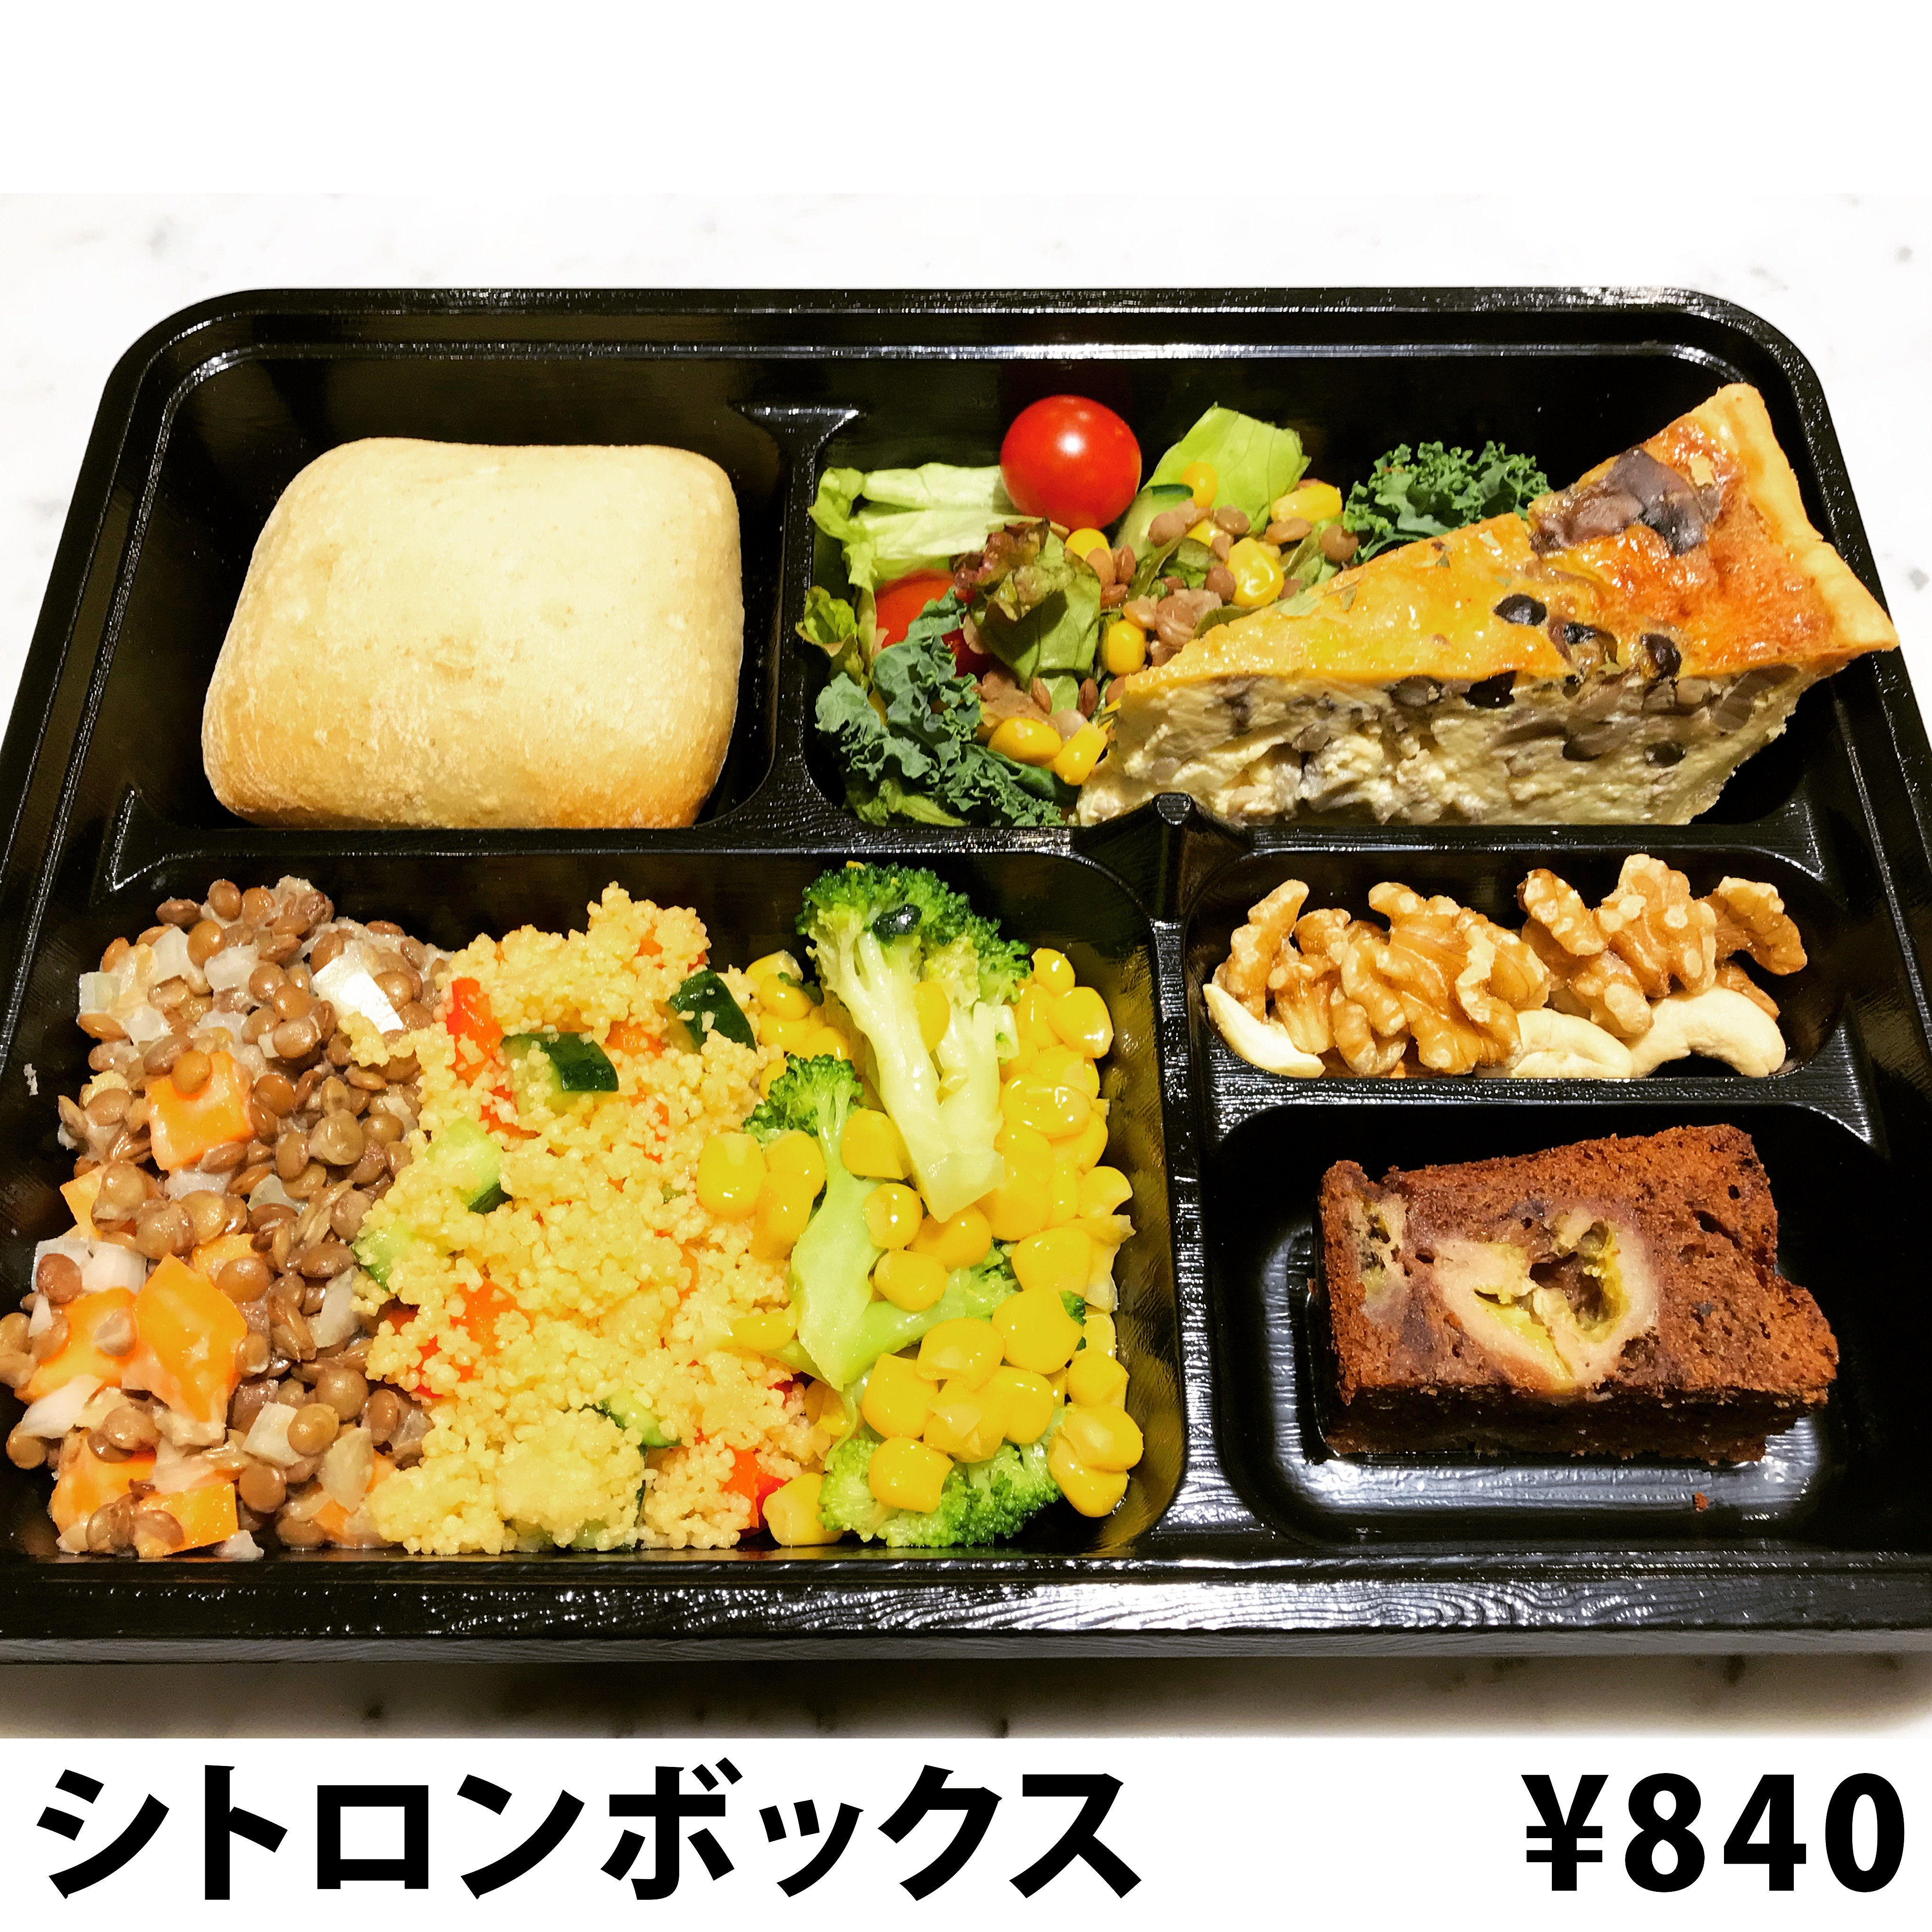 Baby Safety & Health Bright Ride In The Plate Baby Yellow In Car Japan Delicious In Taste